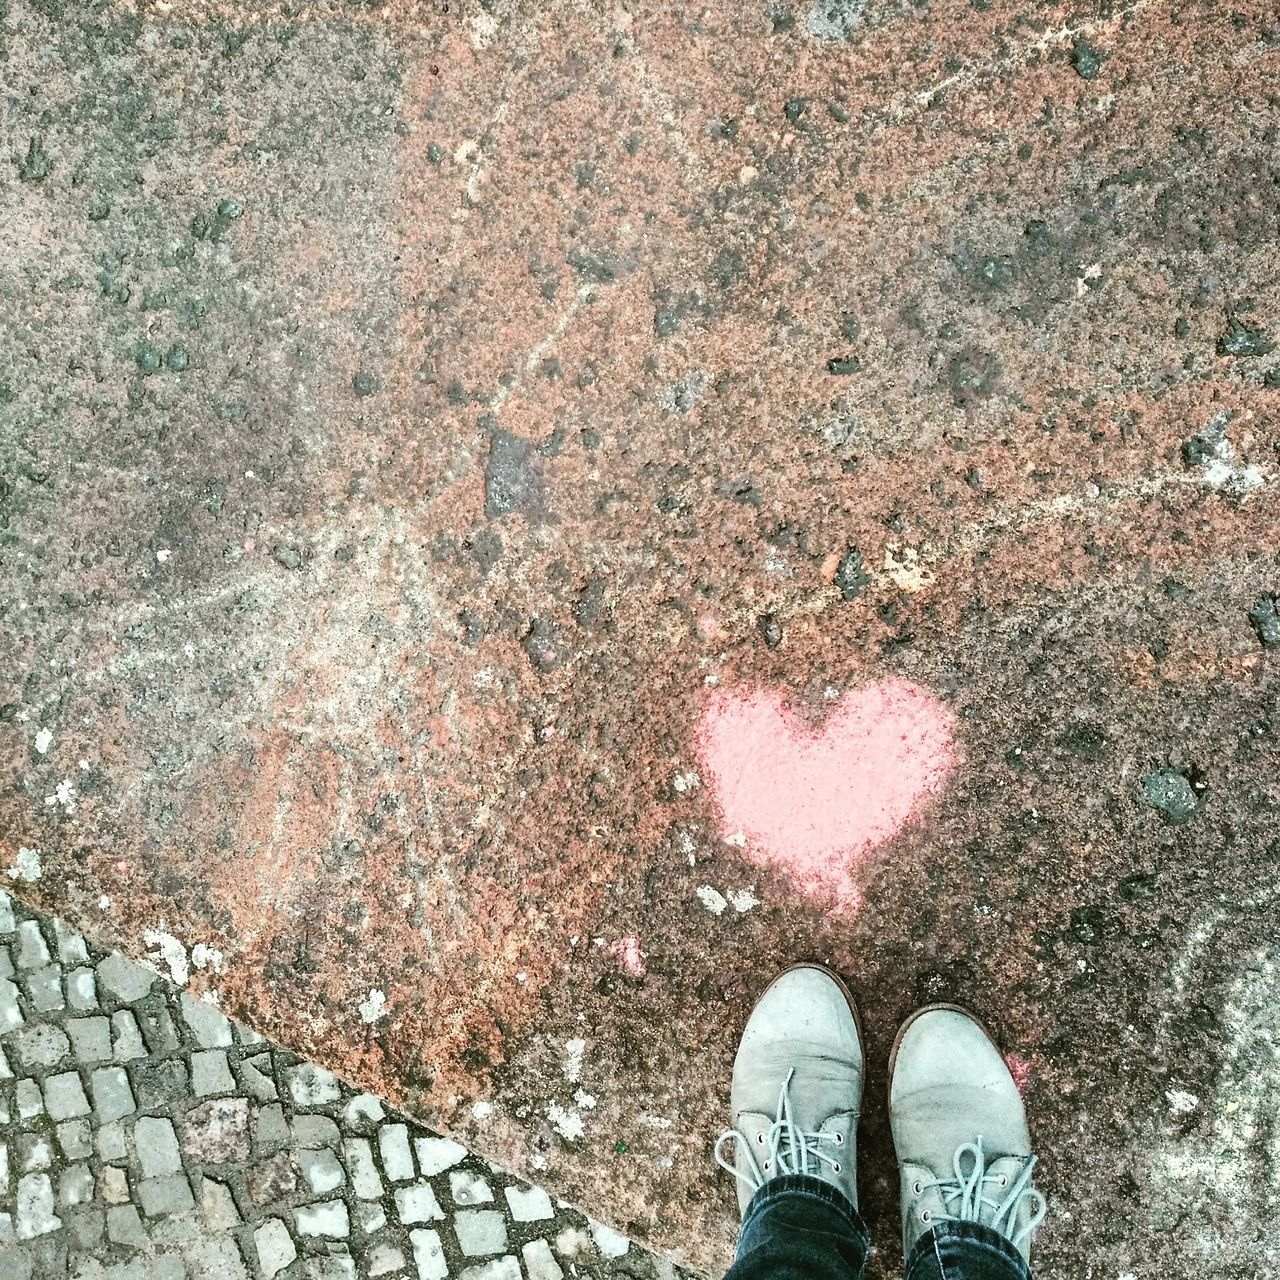 Shoe Standing Art Berlin Berliner Ansichten Pink Street Photography Streetart Street Streetphotography From Where I Stand I Have This Thing With Floors I Have This Thing With Hearts Heart Love Love Is In The Air Love Is On The Floor I See Hearts Herz Auf Stein In Love Looking Down Prenzlauerberg Berlin Prenzlauer Berg Graffiti Signs The Street Photographer - 2017 EyeEm Awards